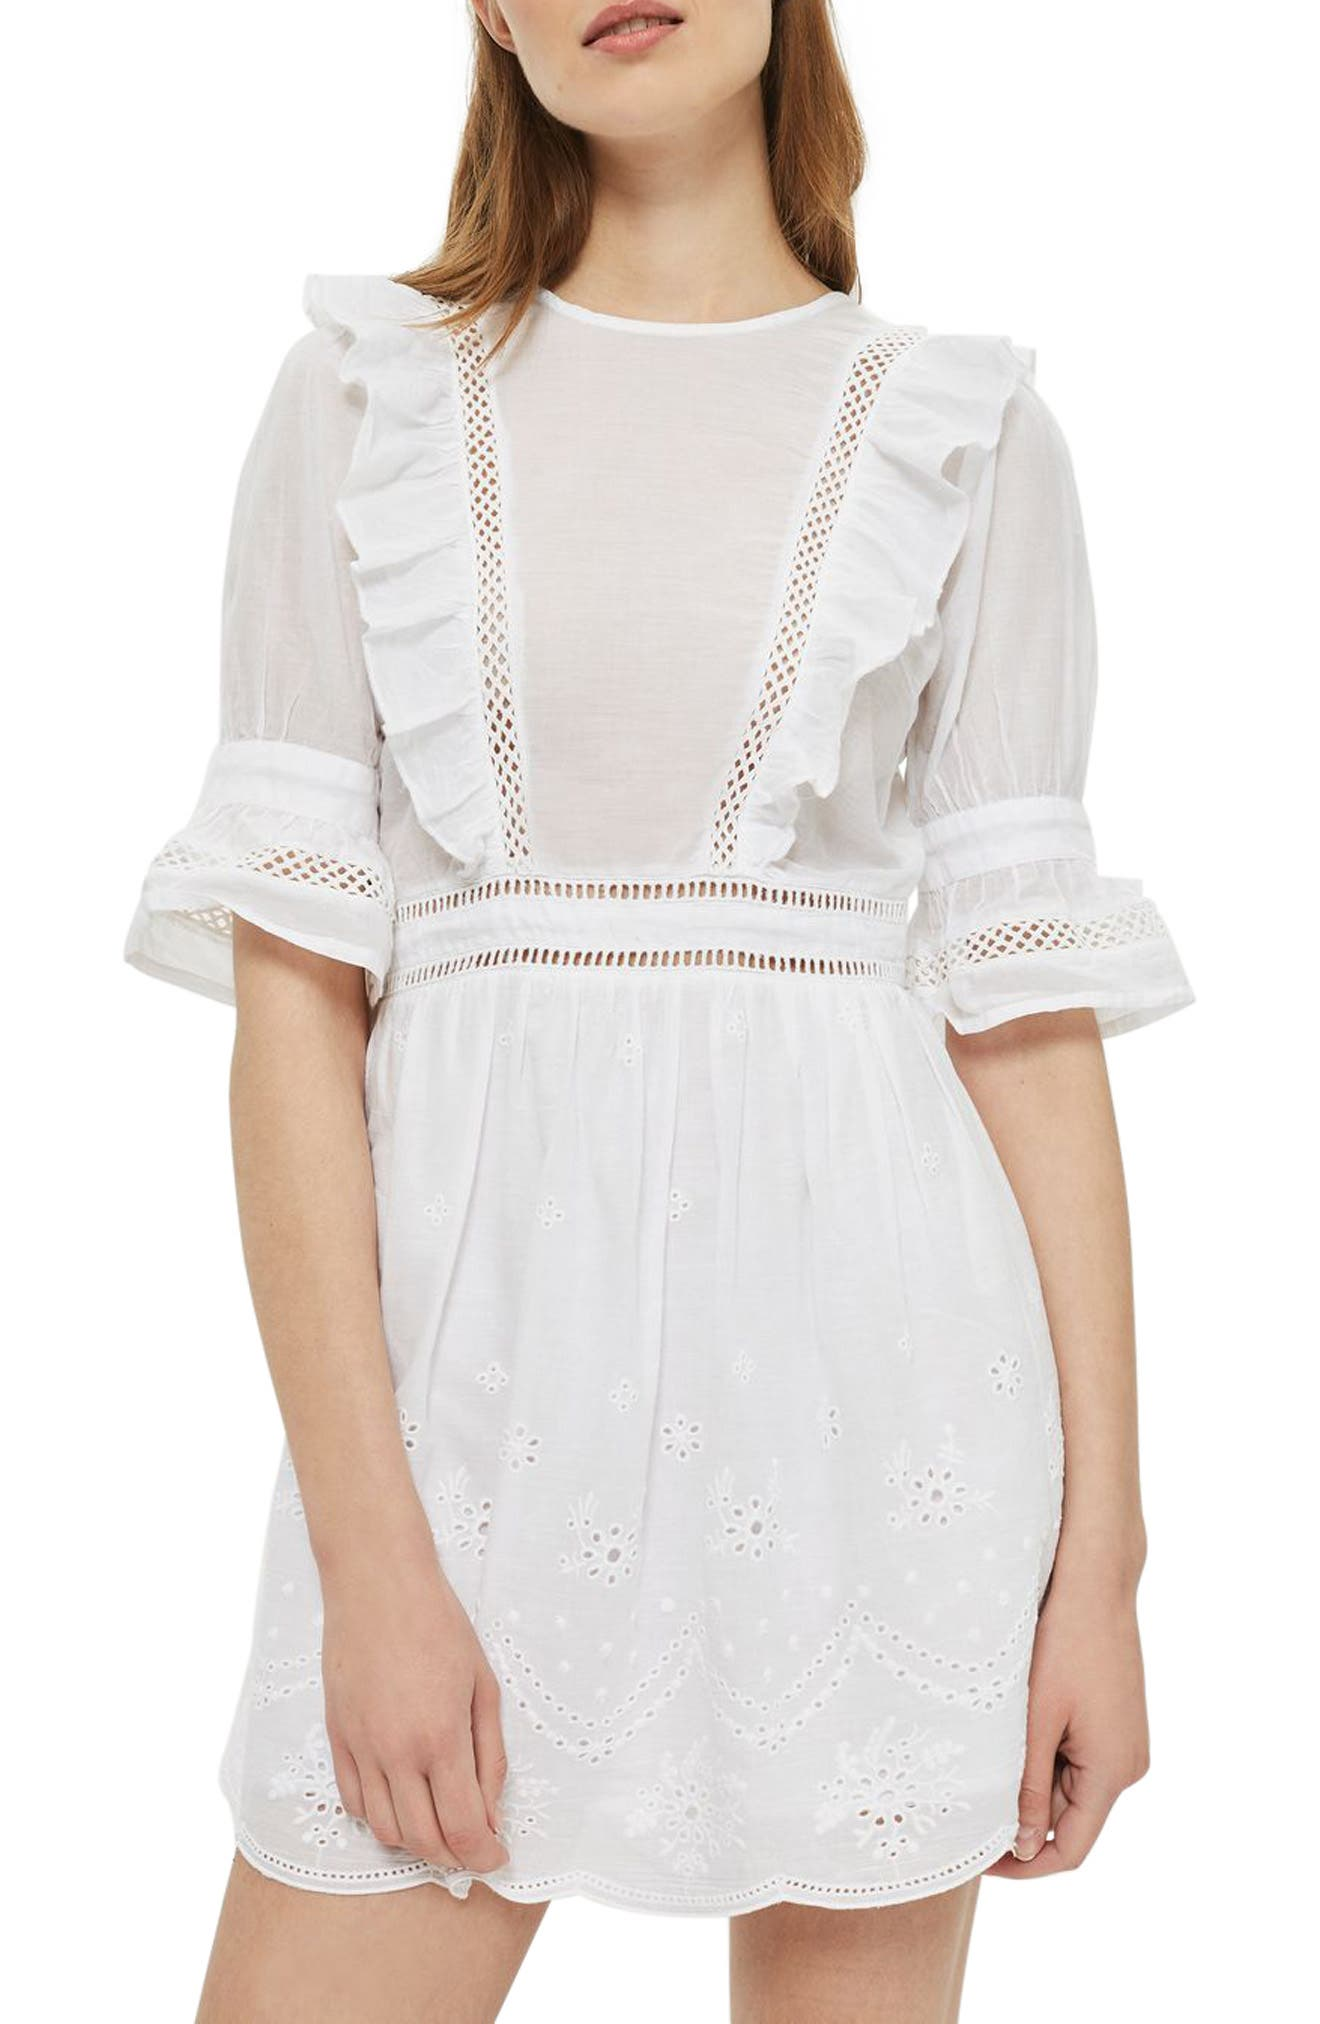 TOPSHOP, Broderie Ruffle Minidress, Main thumbnail 1, color, 100